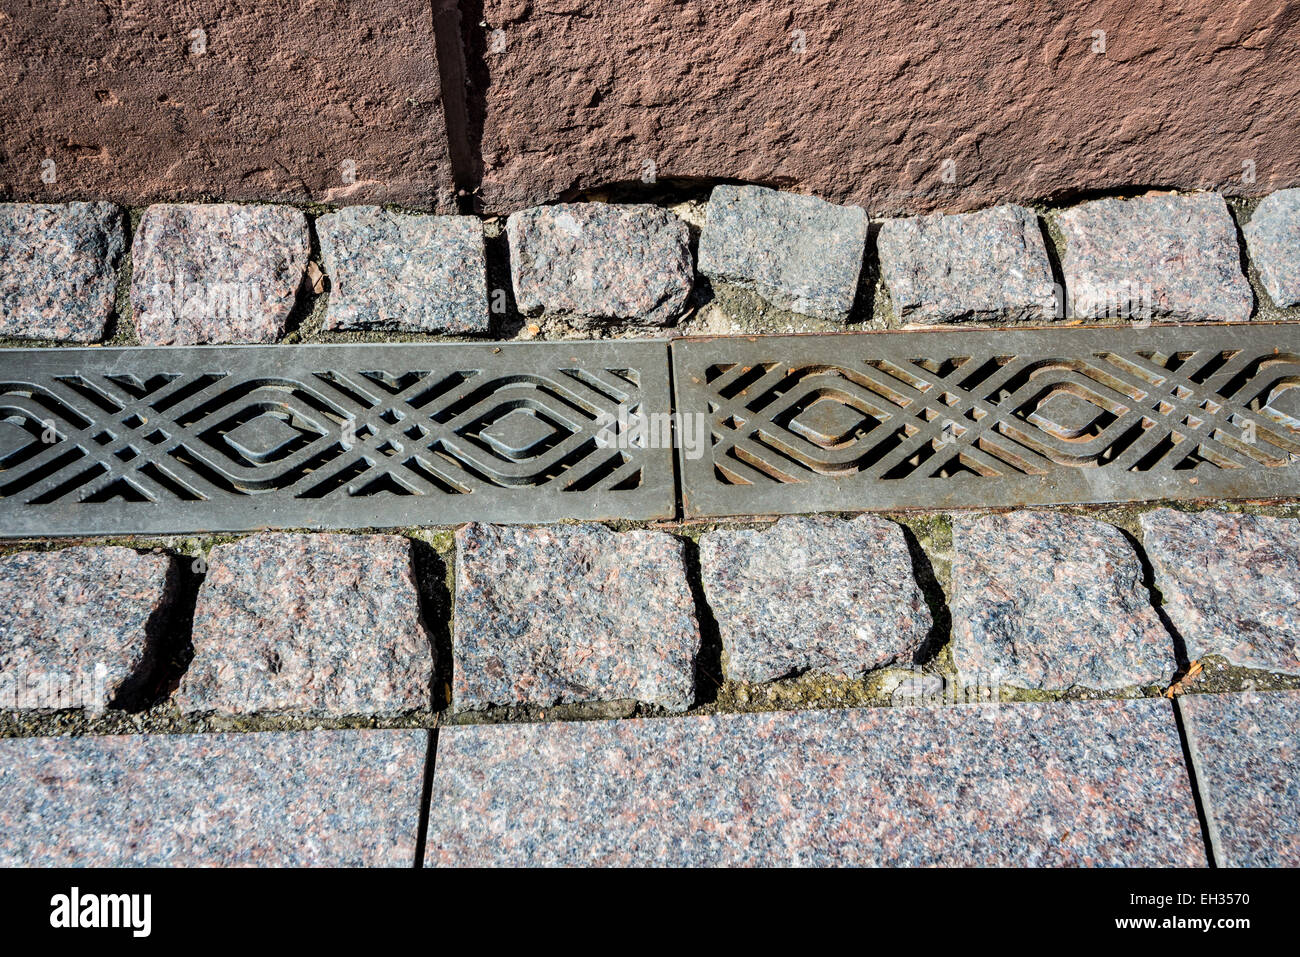 A decorative metal storm drain and permeable pavement in a public plaza - Stock Image